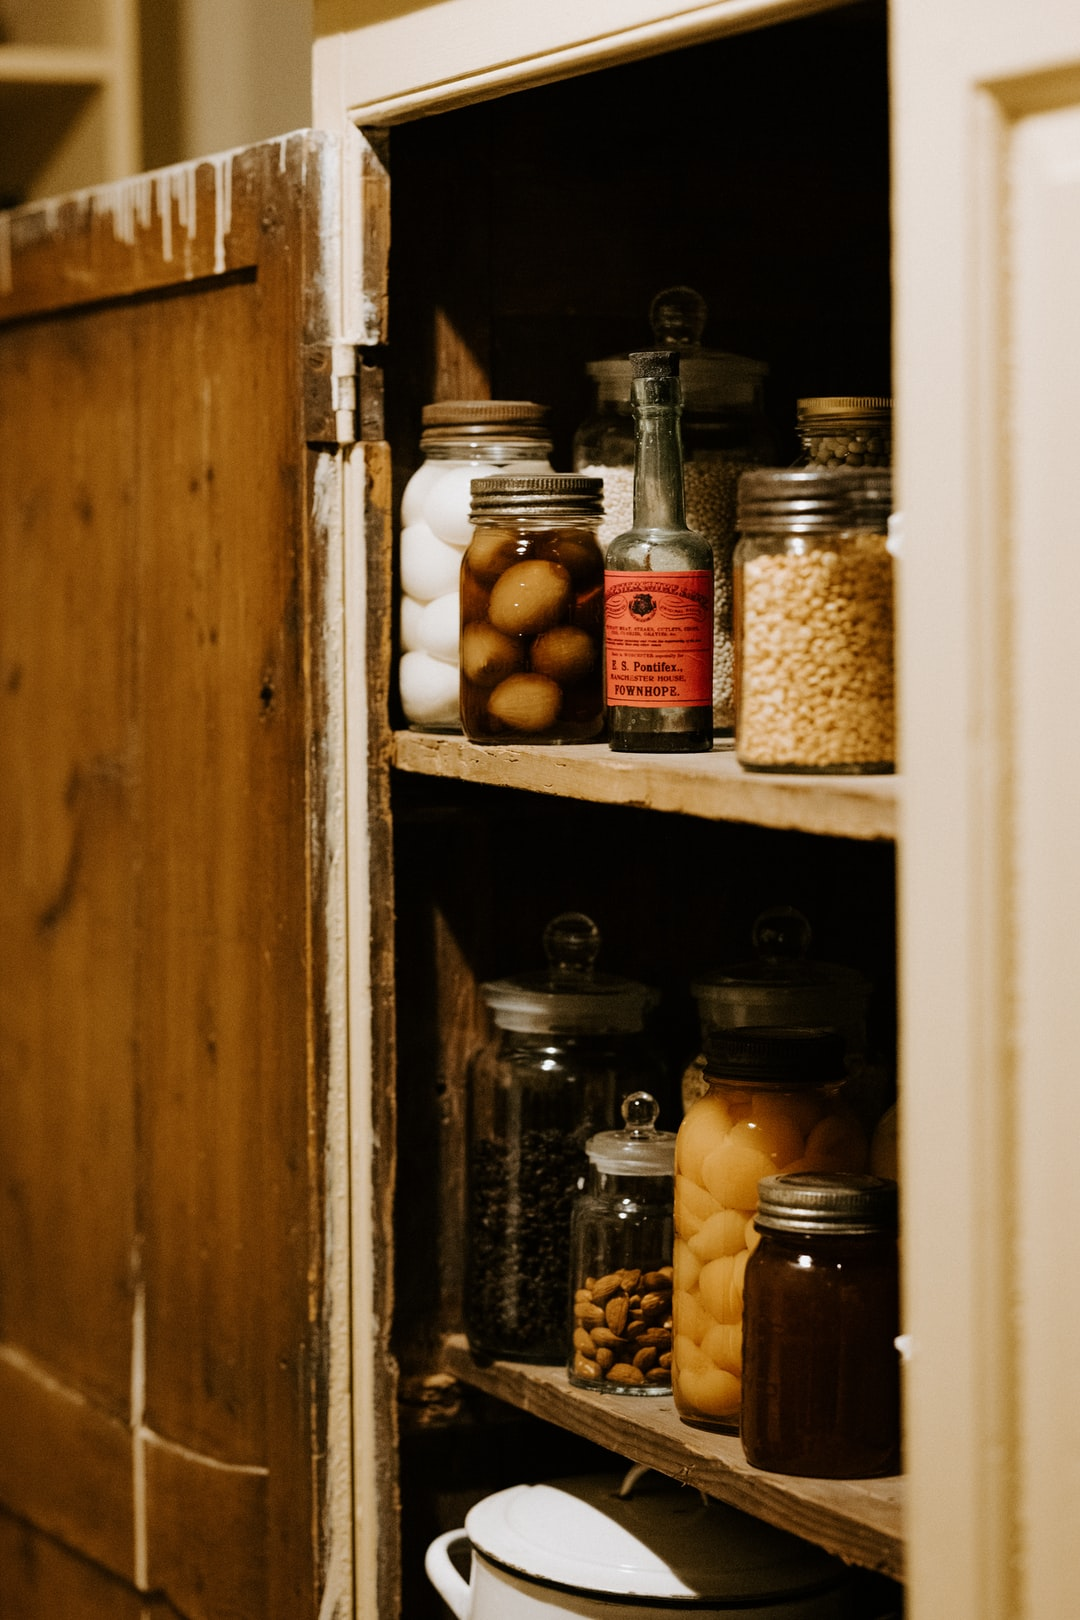 Victorian kitchen pantry larder with food